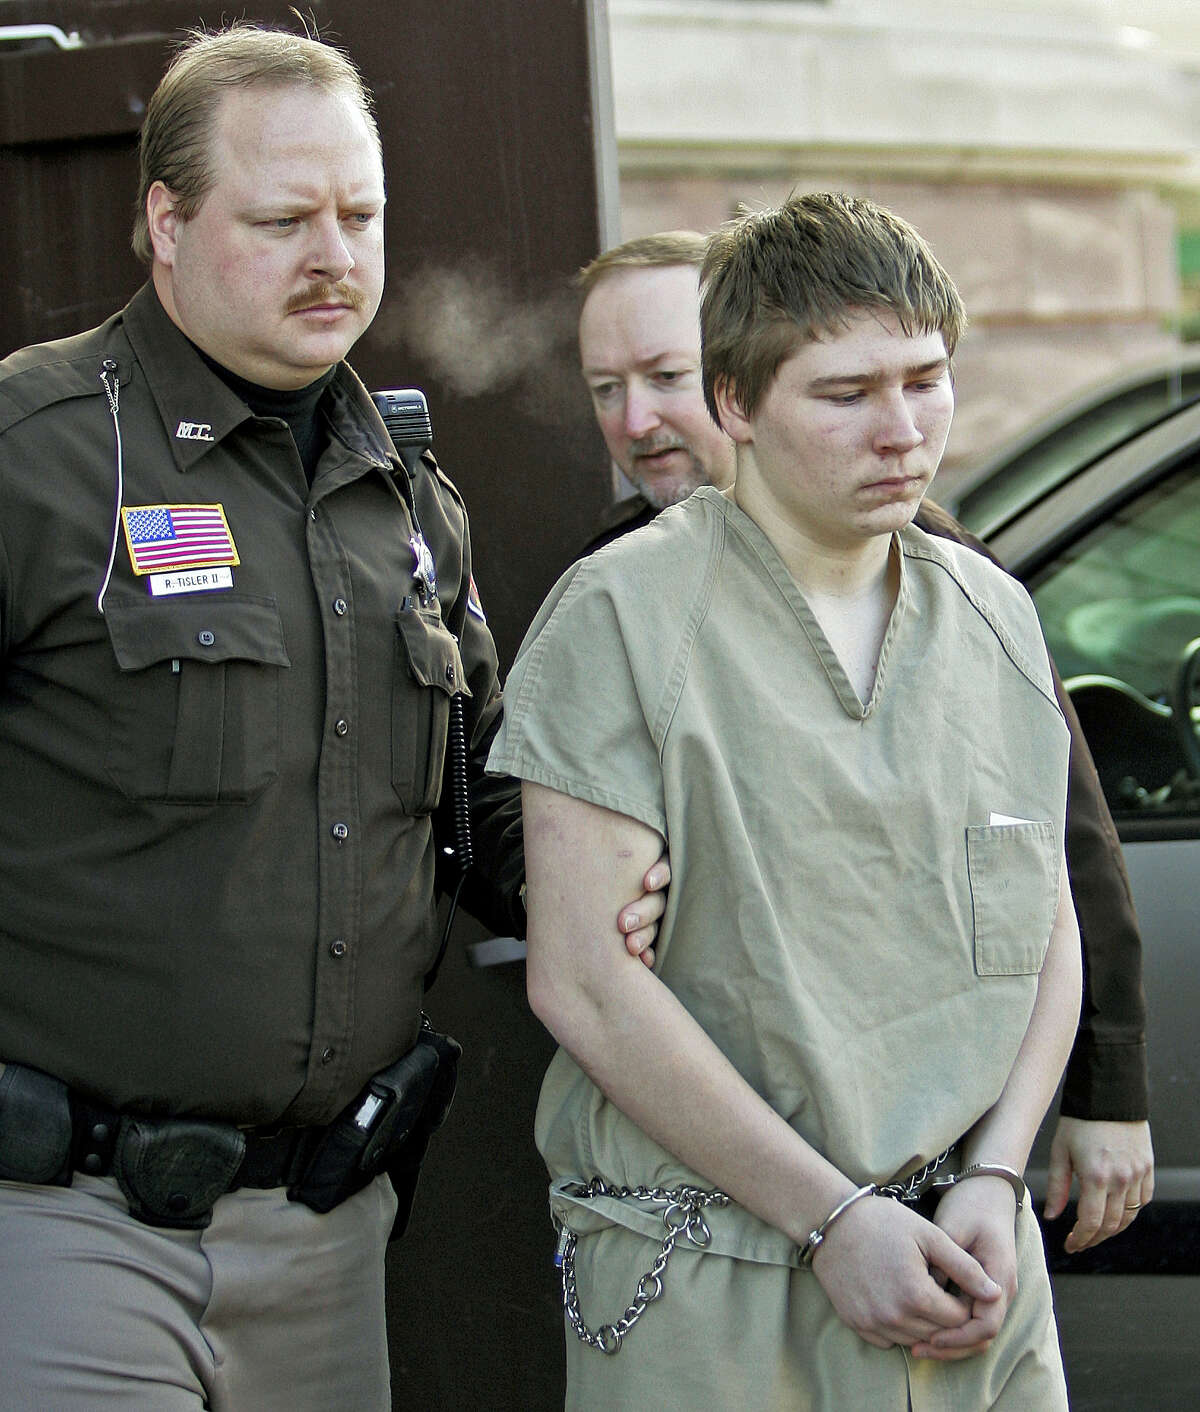 """Brendan Dassey, 16, is escorted out of a Manitowoc County Circuit courtroom in Manitowoc, Wis in 2006. A federal court in Wisconsin on Friday overturned the conviction of Dassey, a man found guilty of helping his uncle kill Teresa Halbach in a case profiled in the Netflix documentary """"Making a Murderer."""""""